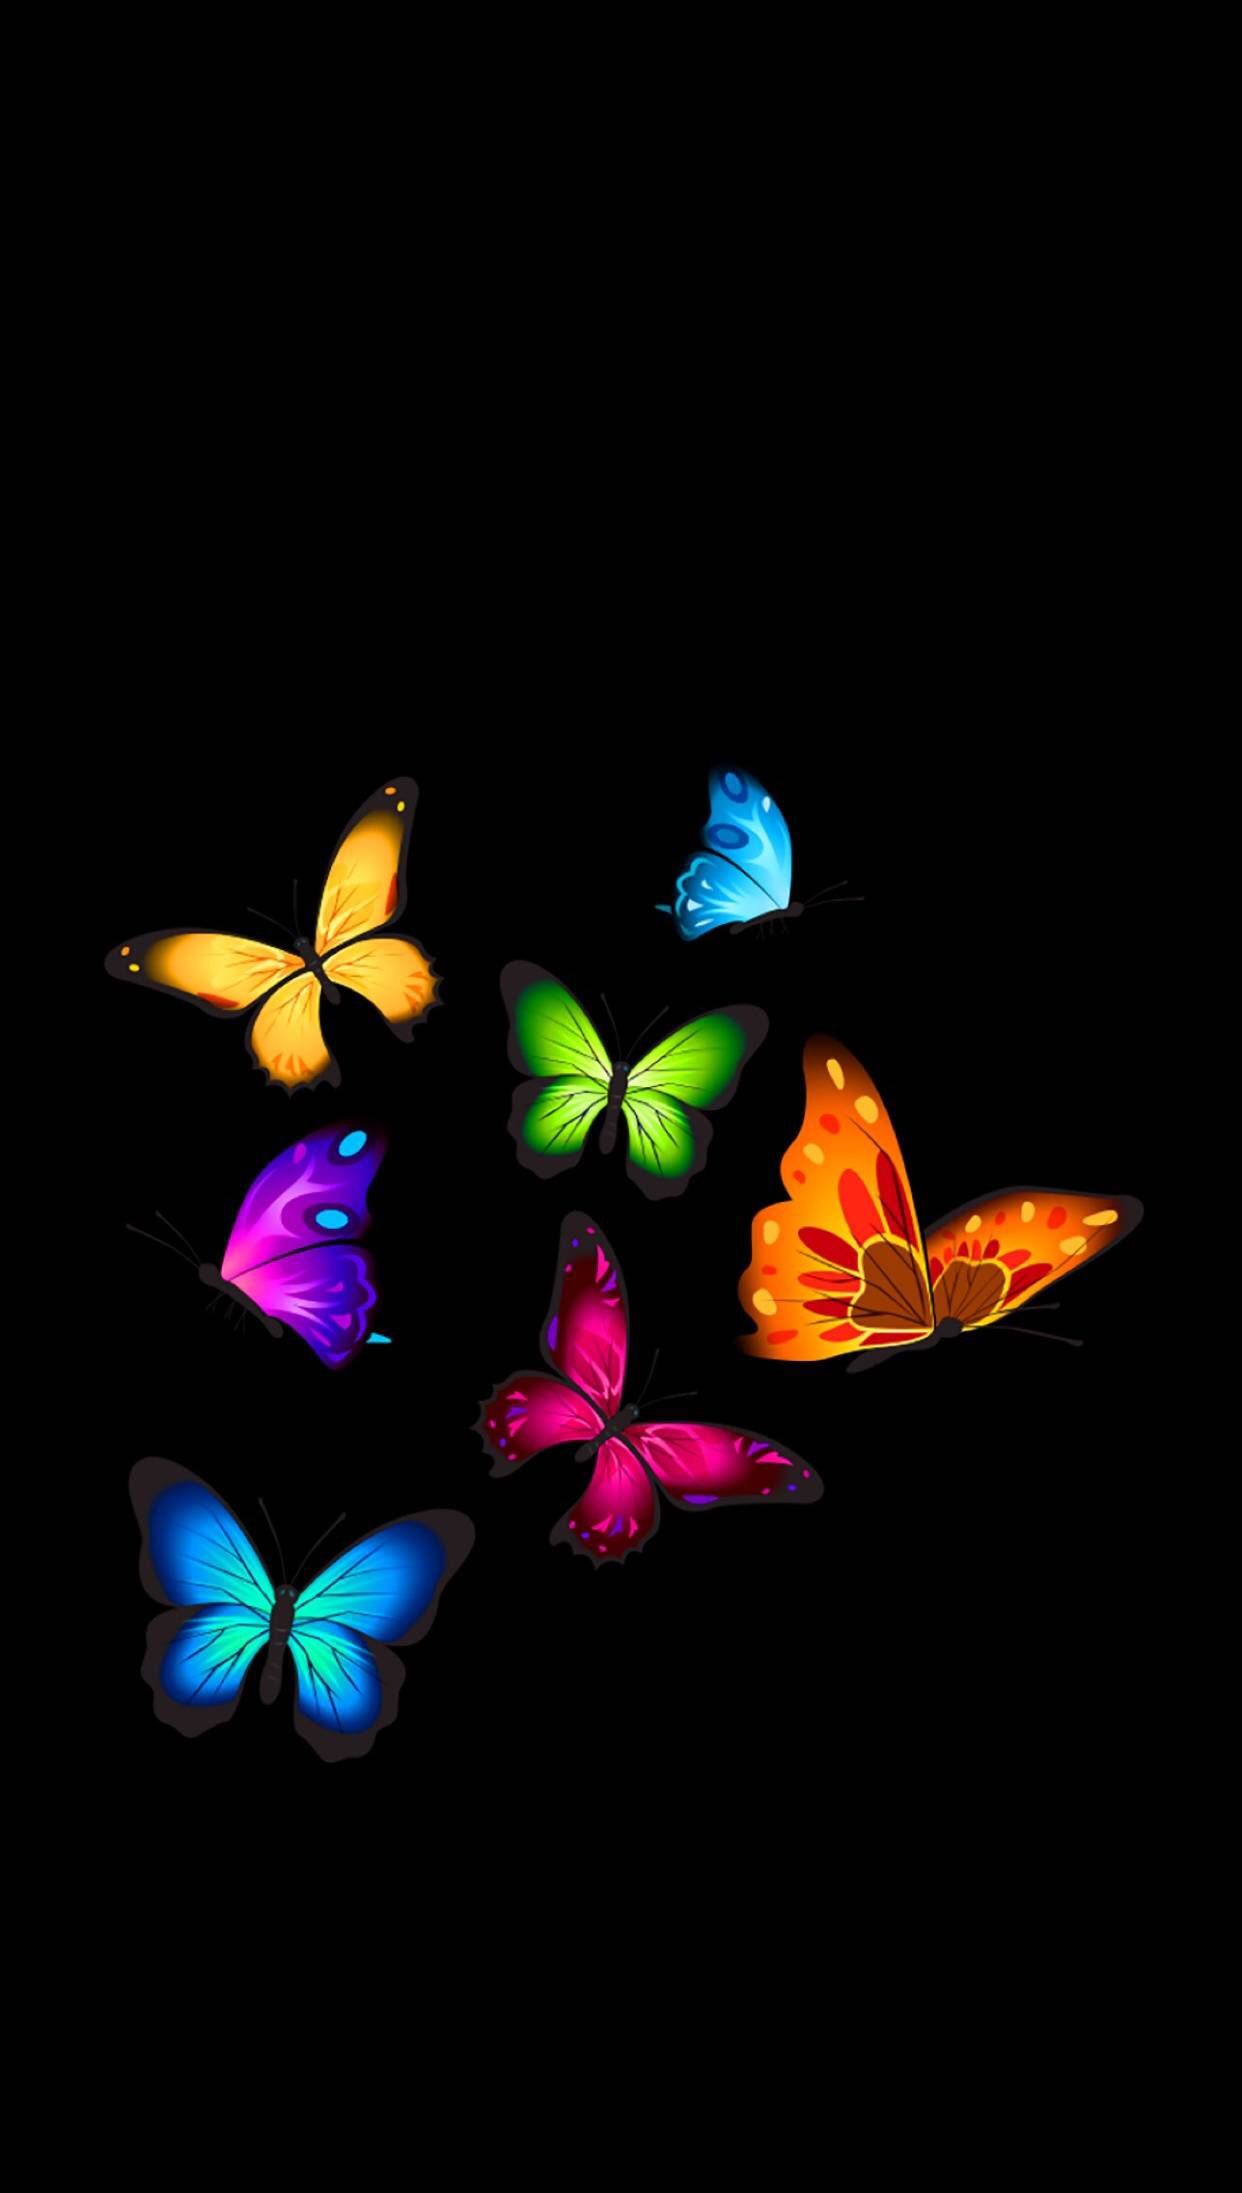 Butterflies Butterfly Wallpaper Butterfly Wallpaper Backgrounds Butterfly Pictures